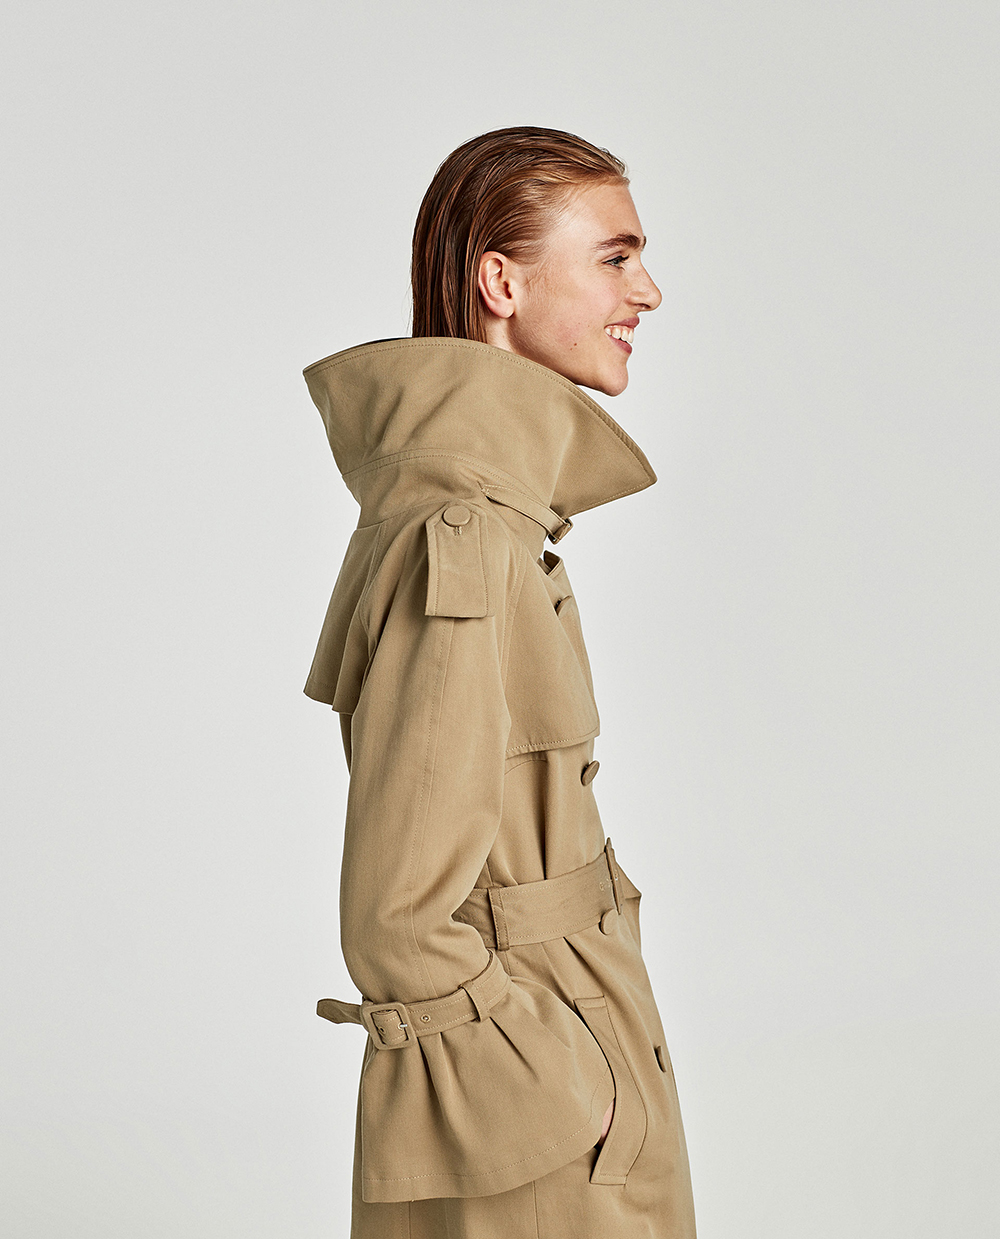 top design order best service The 10 Best Trench Coats From Zara – Honestly WTF